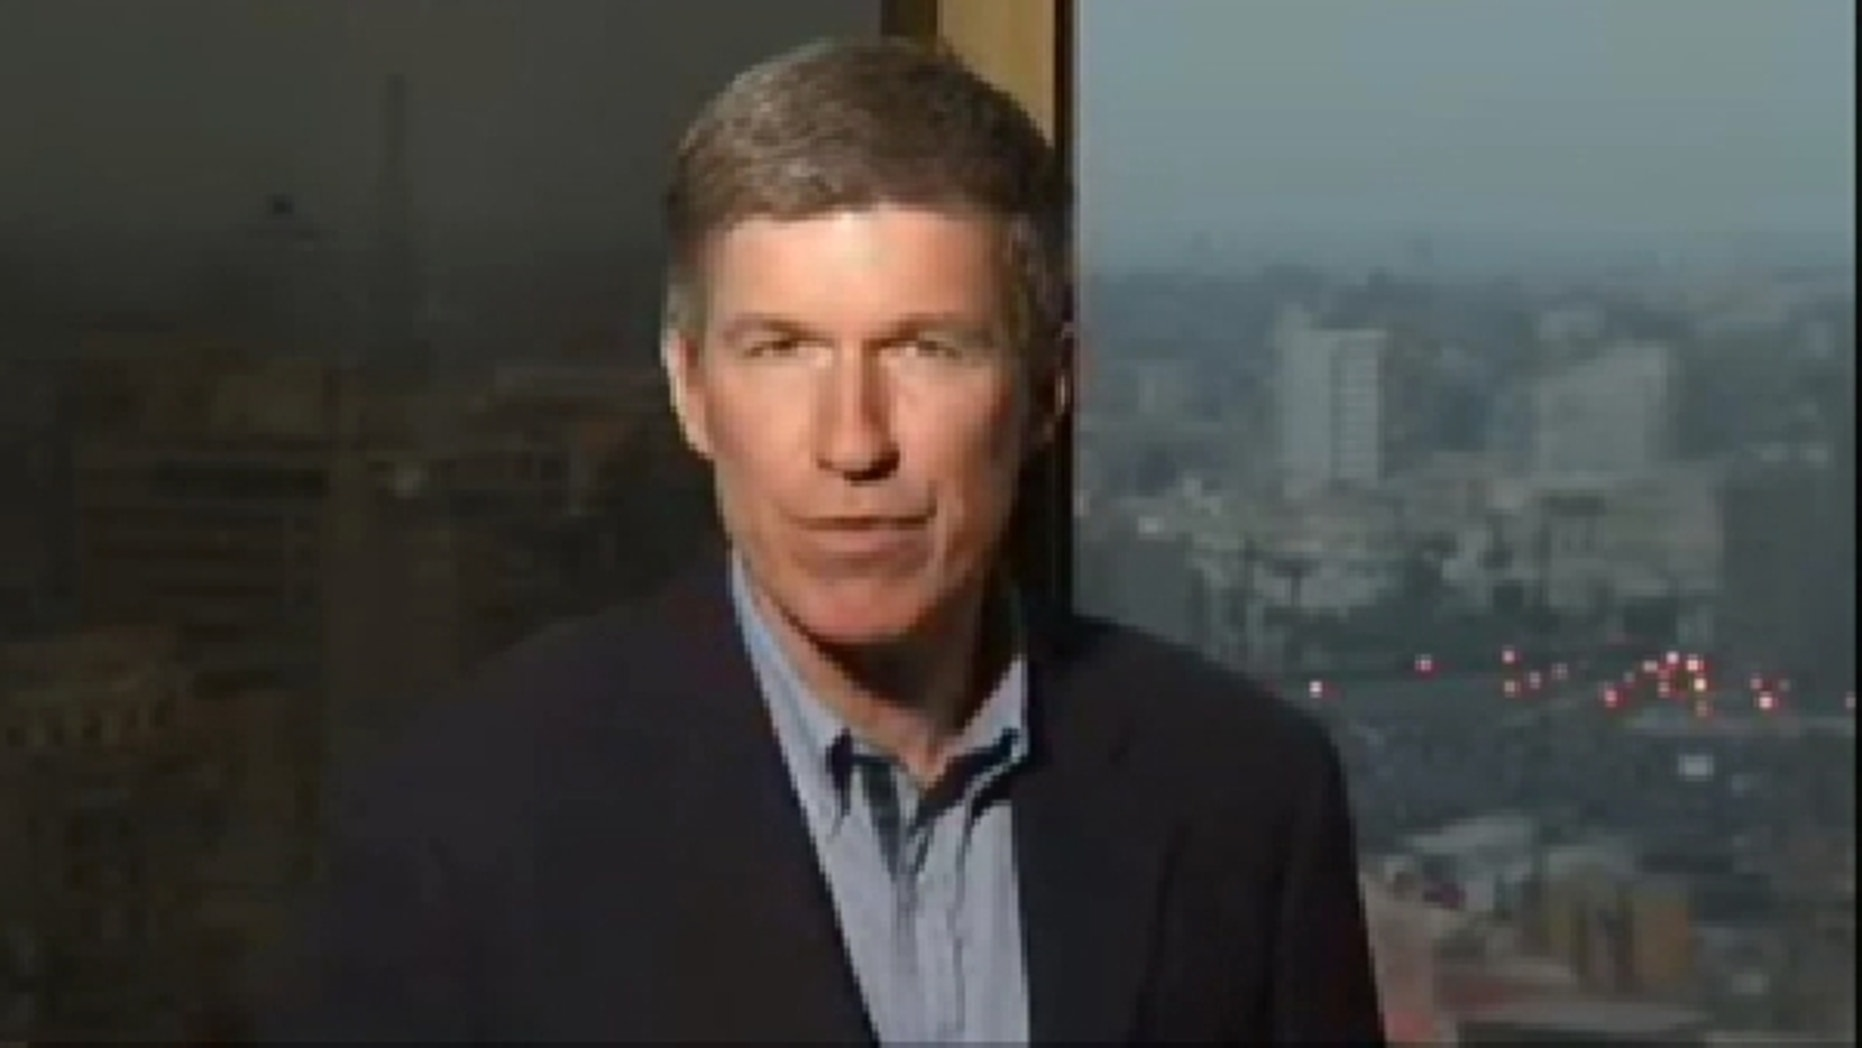 FOX News' Greg Palkot, pictured above, is one of several journalists covering the Egypt crisis who have been attacked or threatened by protesters in Cairo. (FNC)